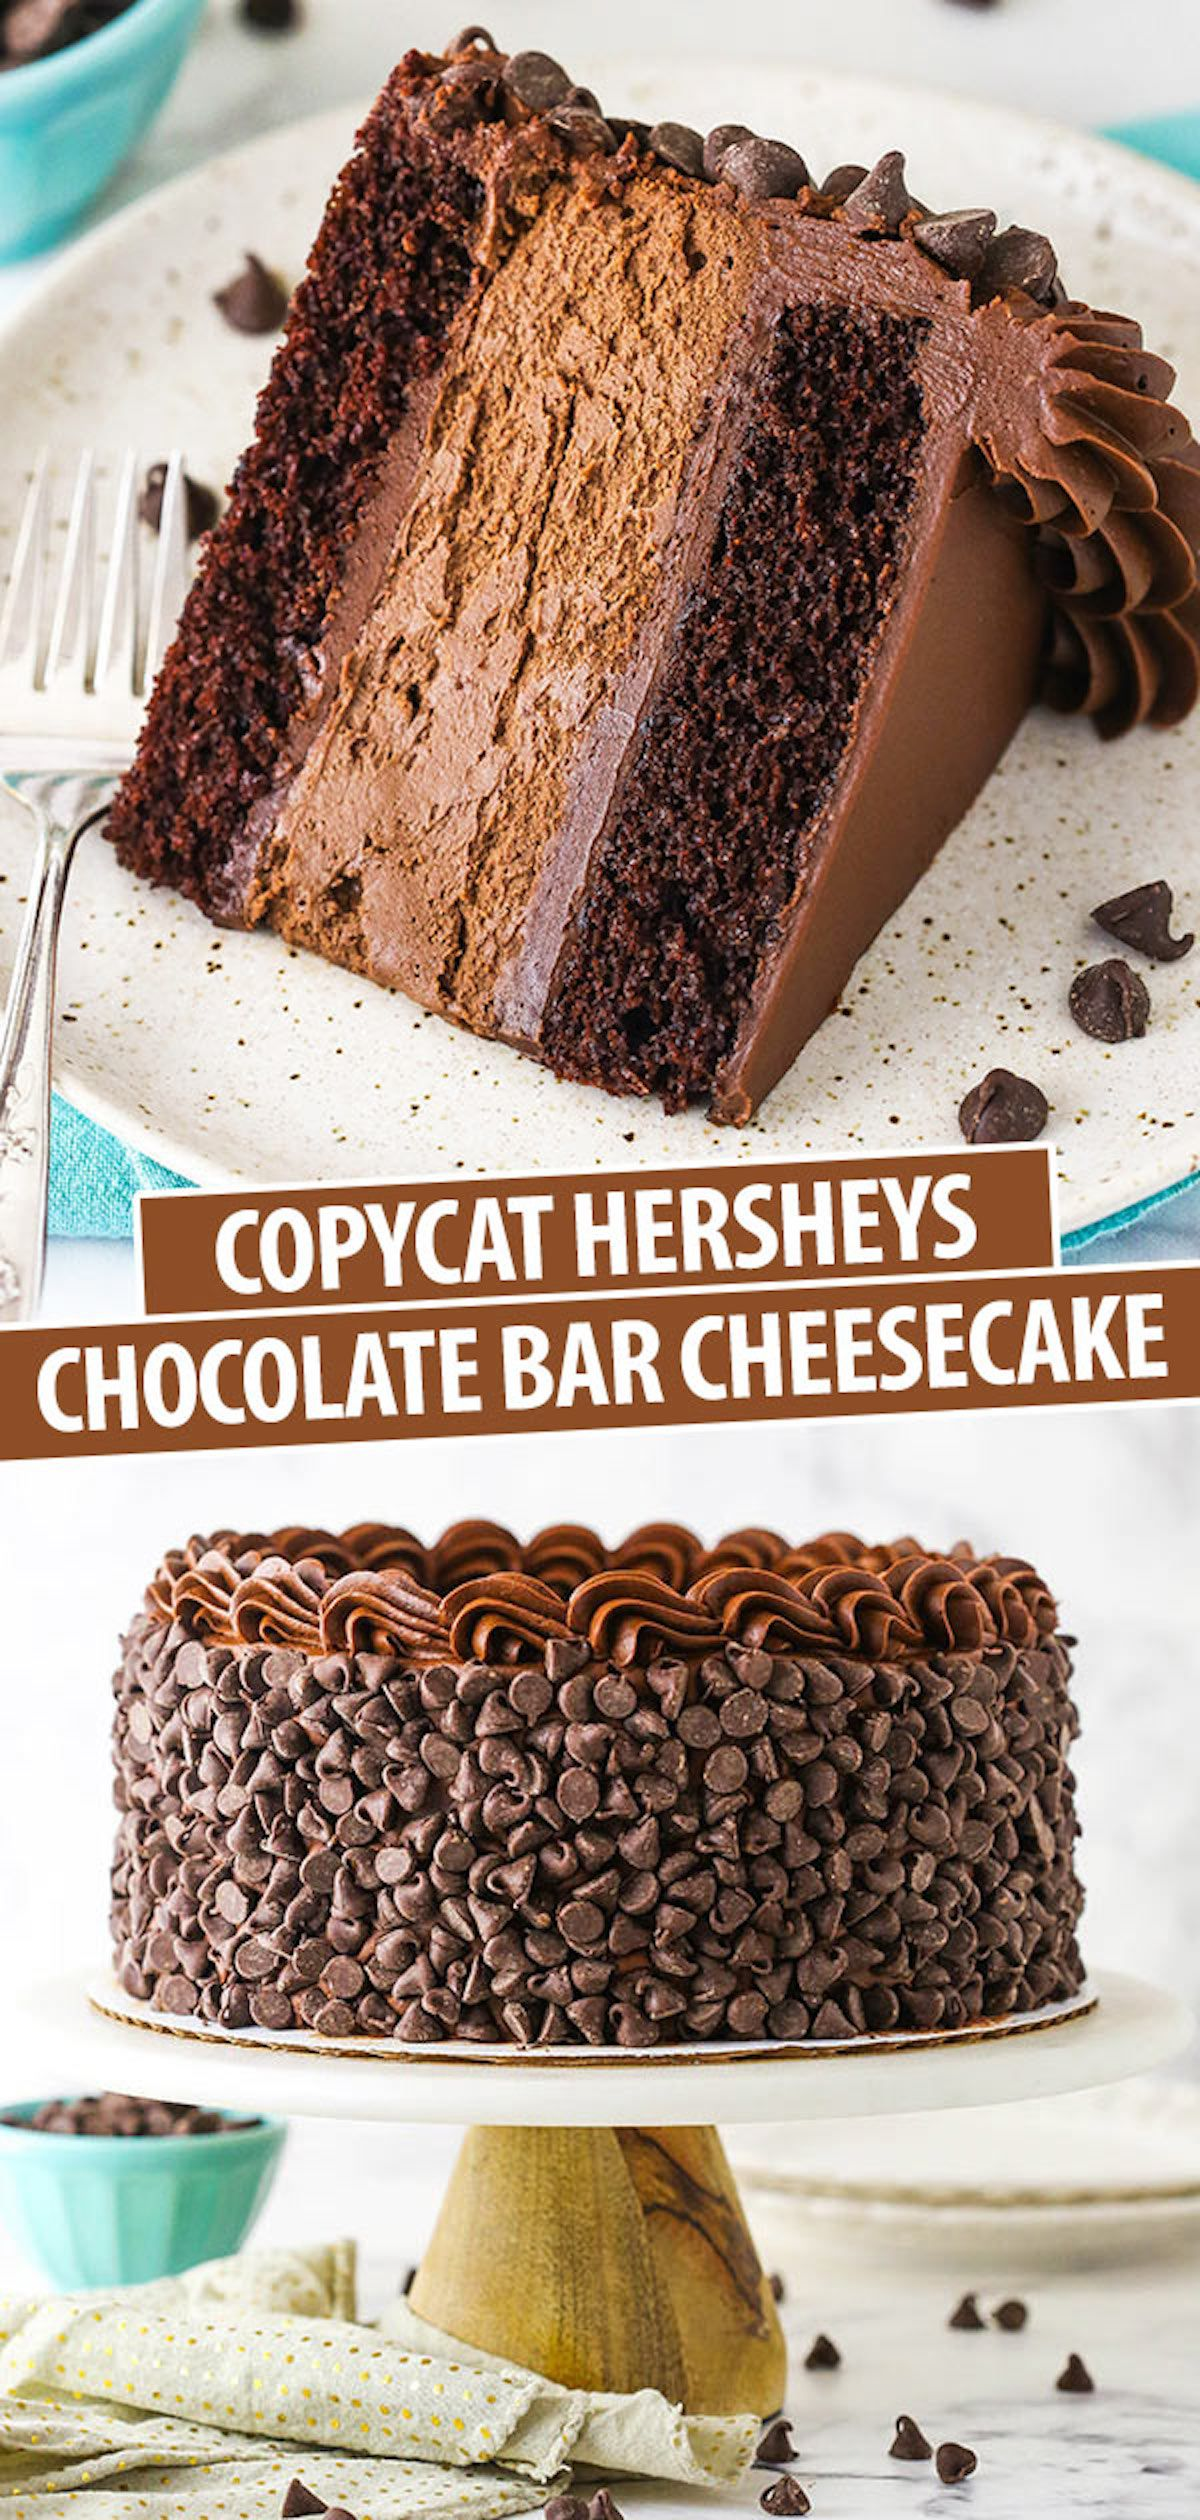 This homemade Hershey's Chocolate Bar Cheesecake is one decadent dessert! It has two layers of light and moist chocolate cake and a layer of chocolate cheesecake. It's complete with a smooth chocolate buttercream and plenty of chocolate chips! #chocolatecheesecake #chocolatecake #cheesecakefactory #cheesecakerecipes #hersheys #hersheyscake #layercake #chocolatebuttercream